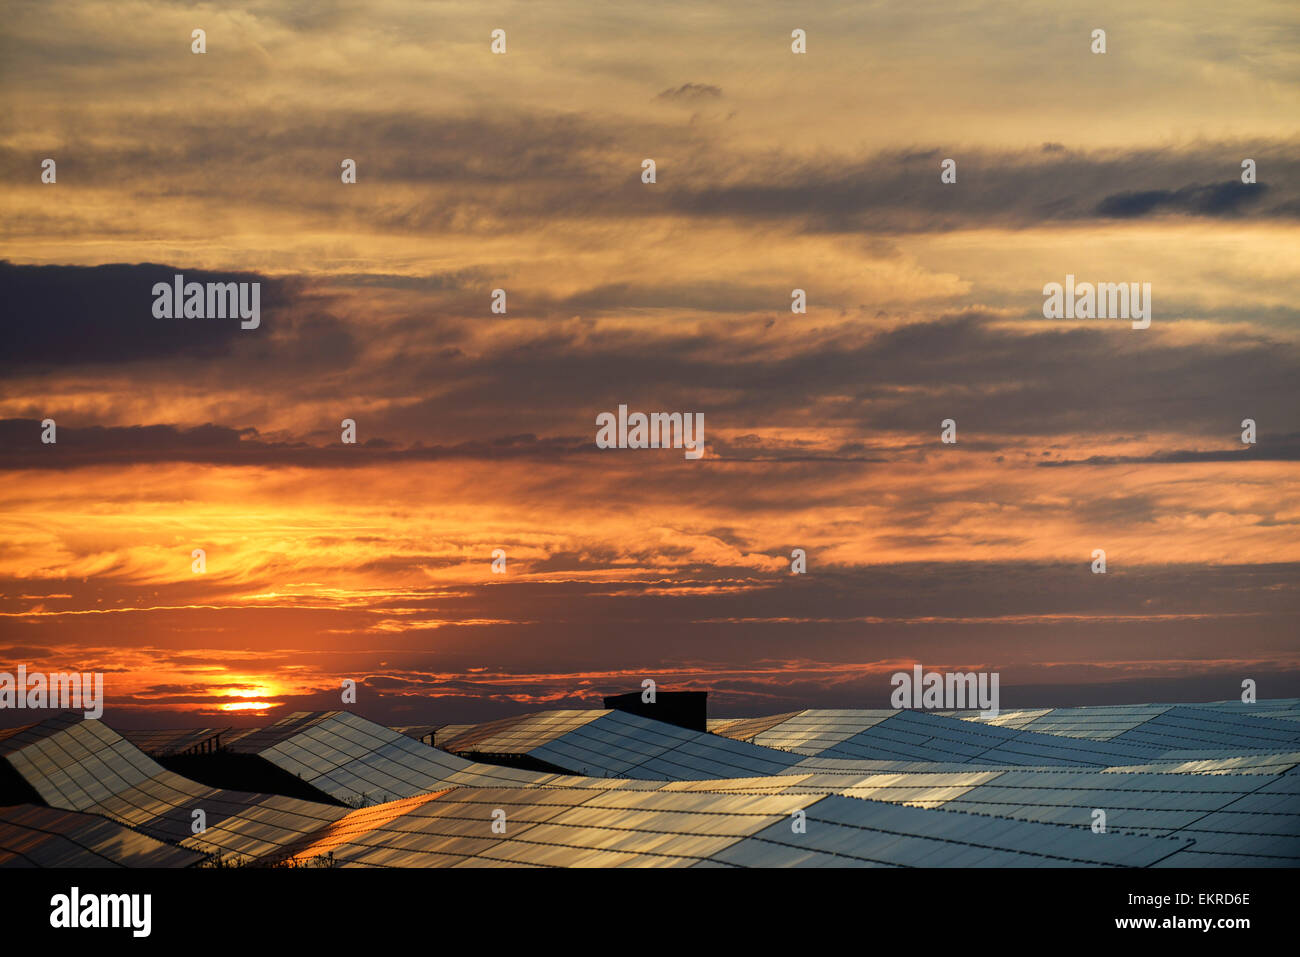 Solar cells field and sundown france europe - Stock Image